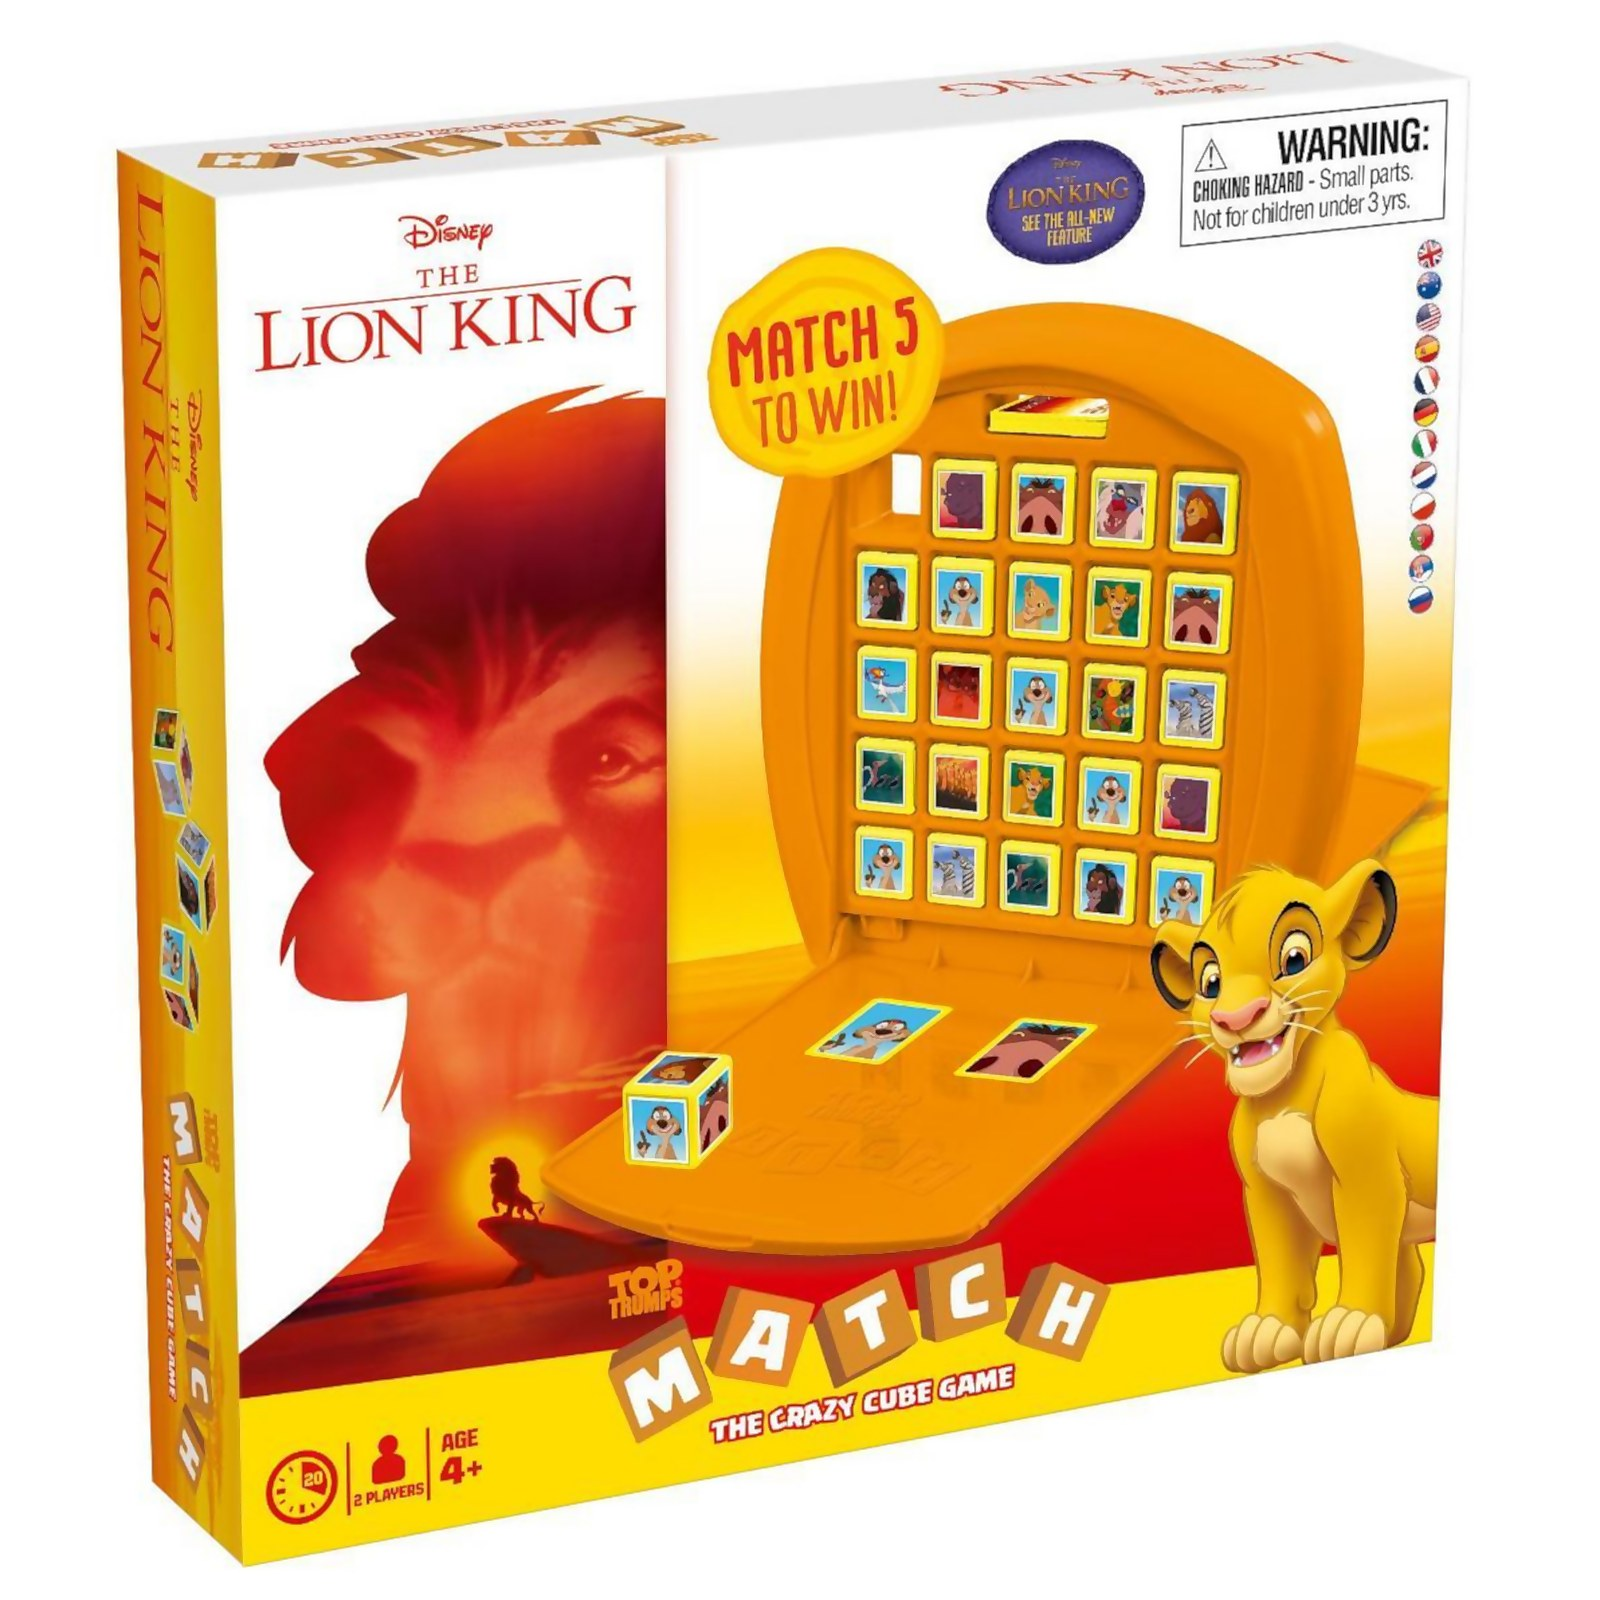 Image of Top Trumps Match Board Game - The Lion King Edition